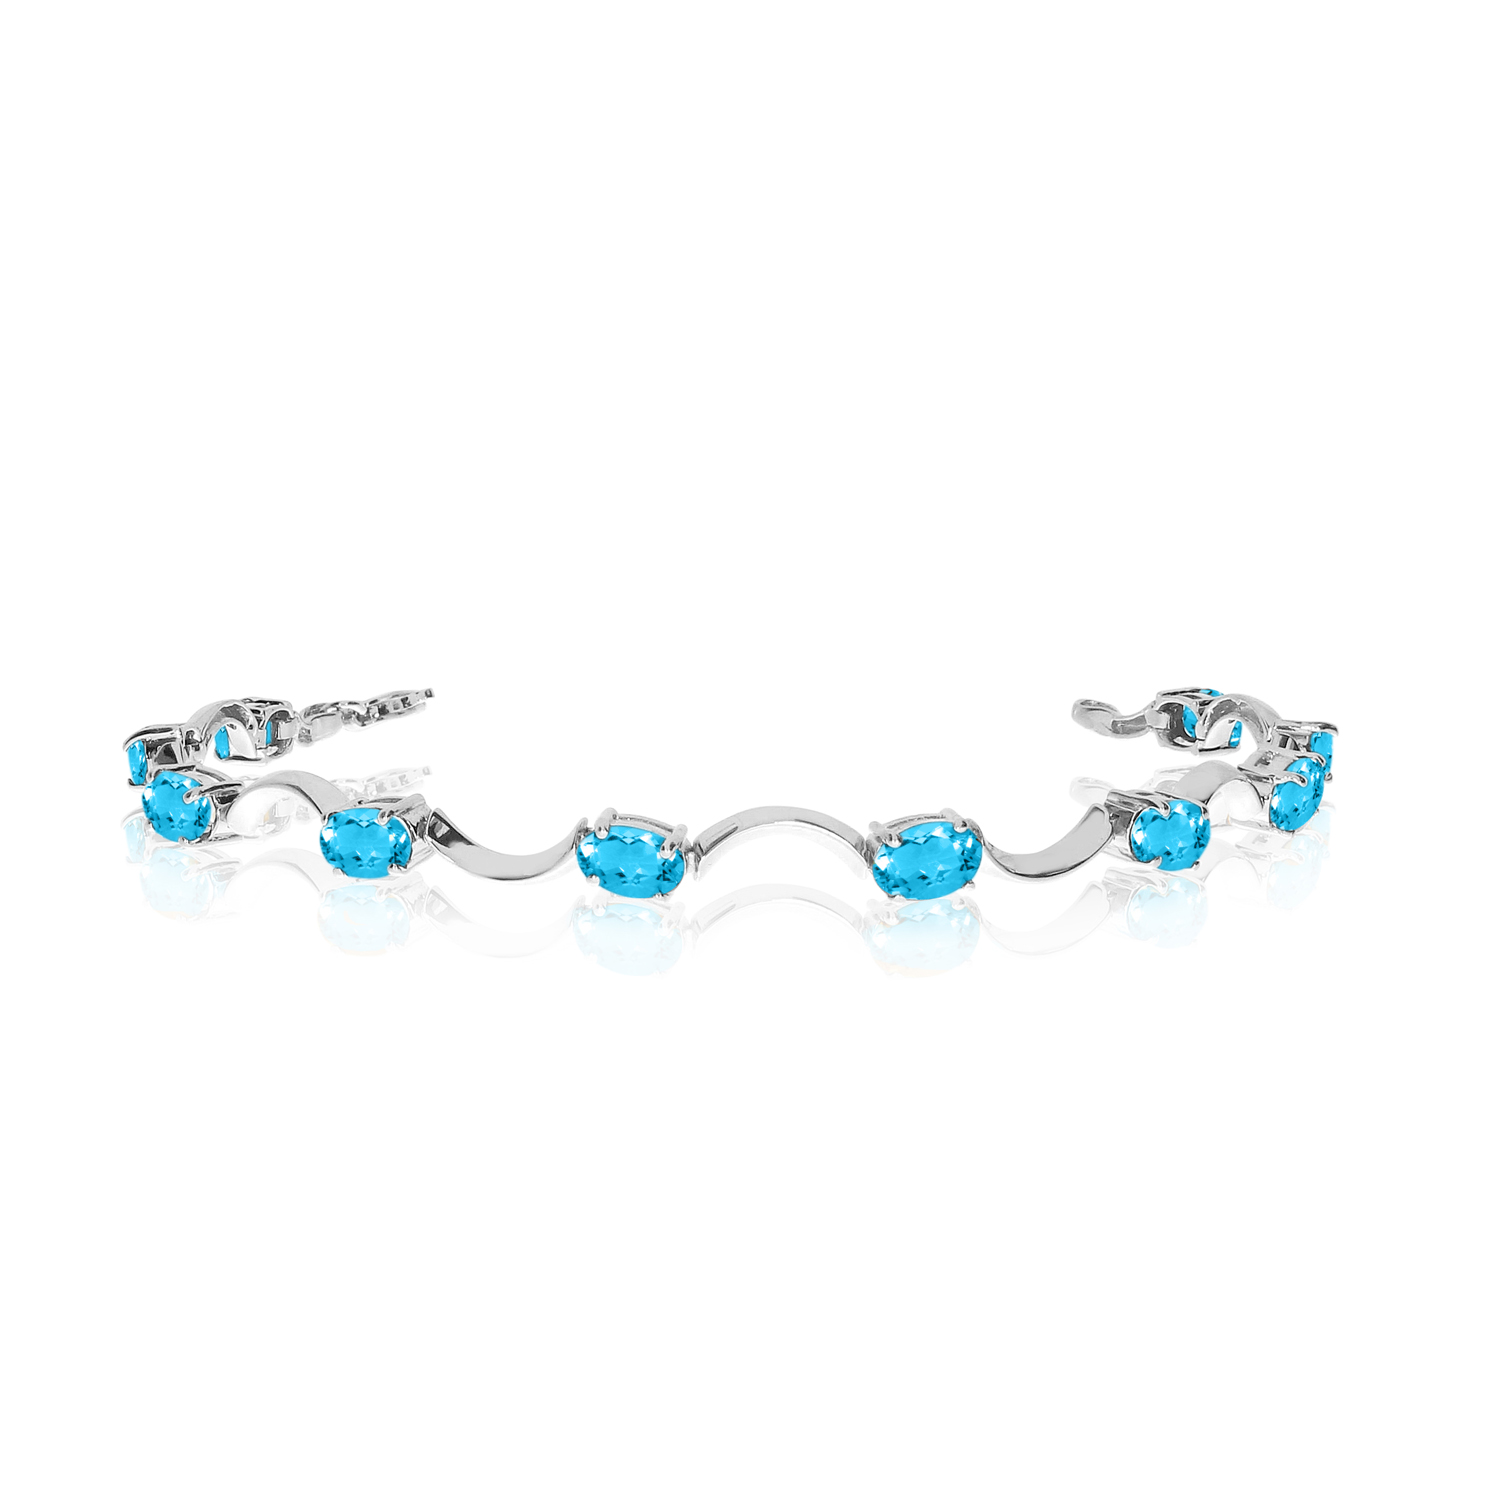 10K White Gold Oval Blue Topaz Curved Bar Bracelet by